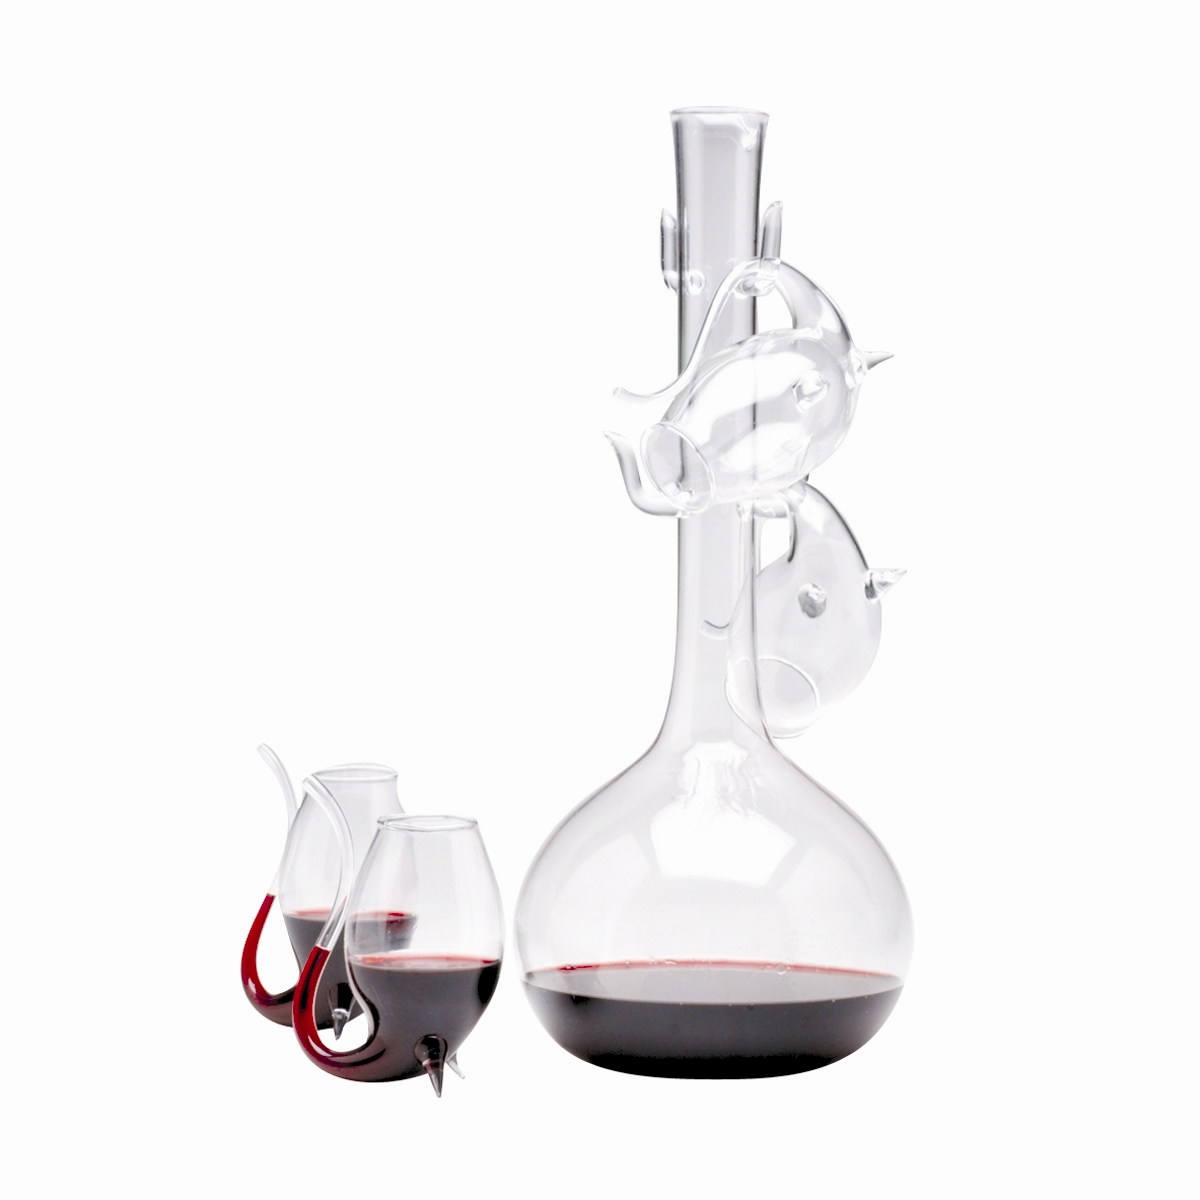 [Port Sipper and Decanter Set]